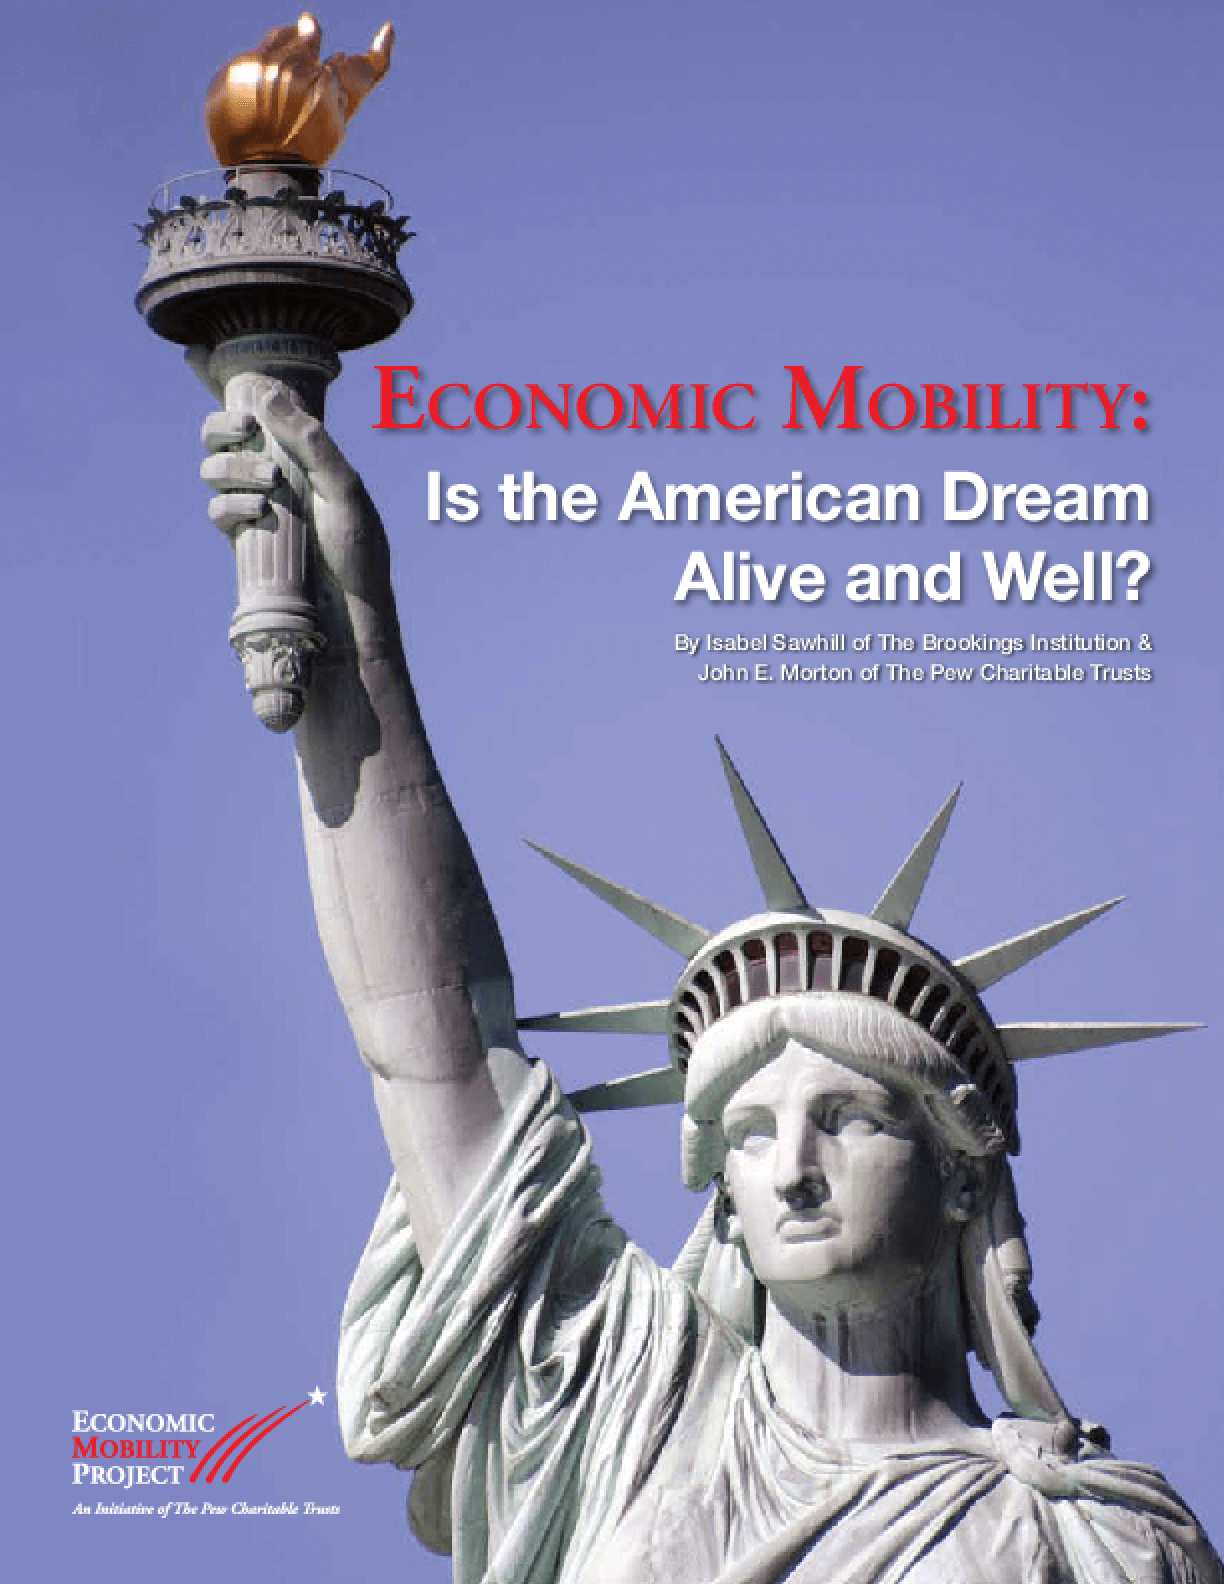 Economic Mobility: Is the American Dream Alive and Well?